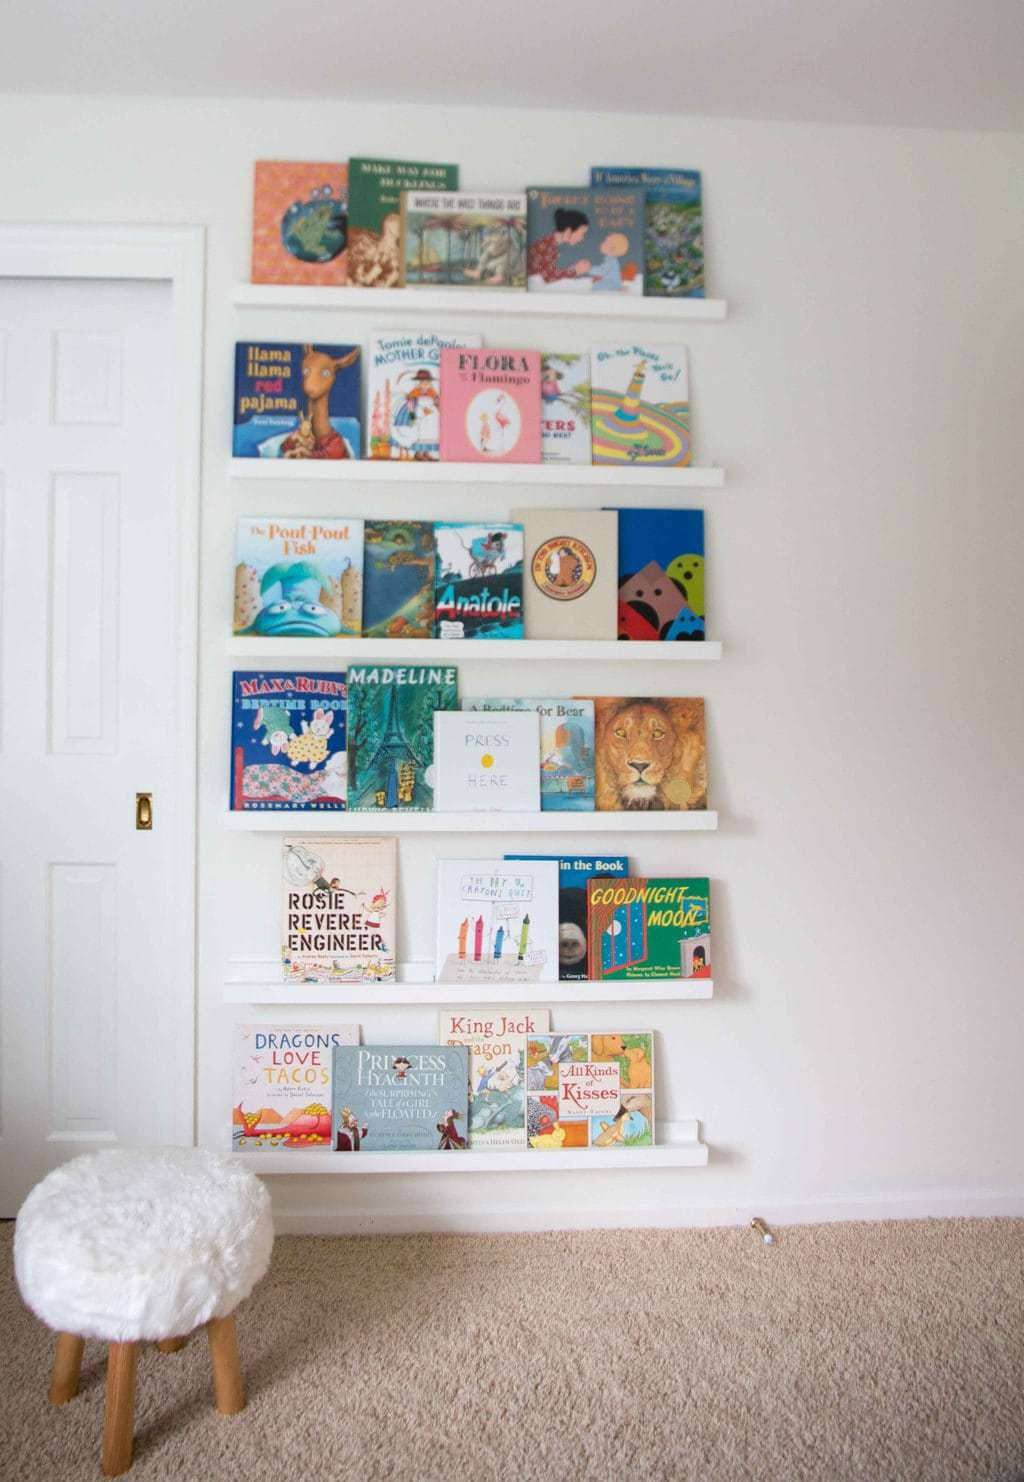 DIY book ledge bookcase nursery - DIY Book Ledge in Nursery by popular home decor blogger DIY Decor Mom